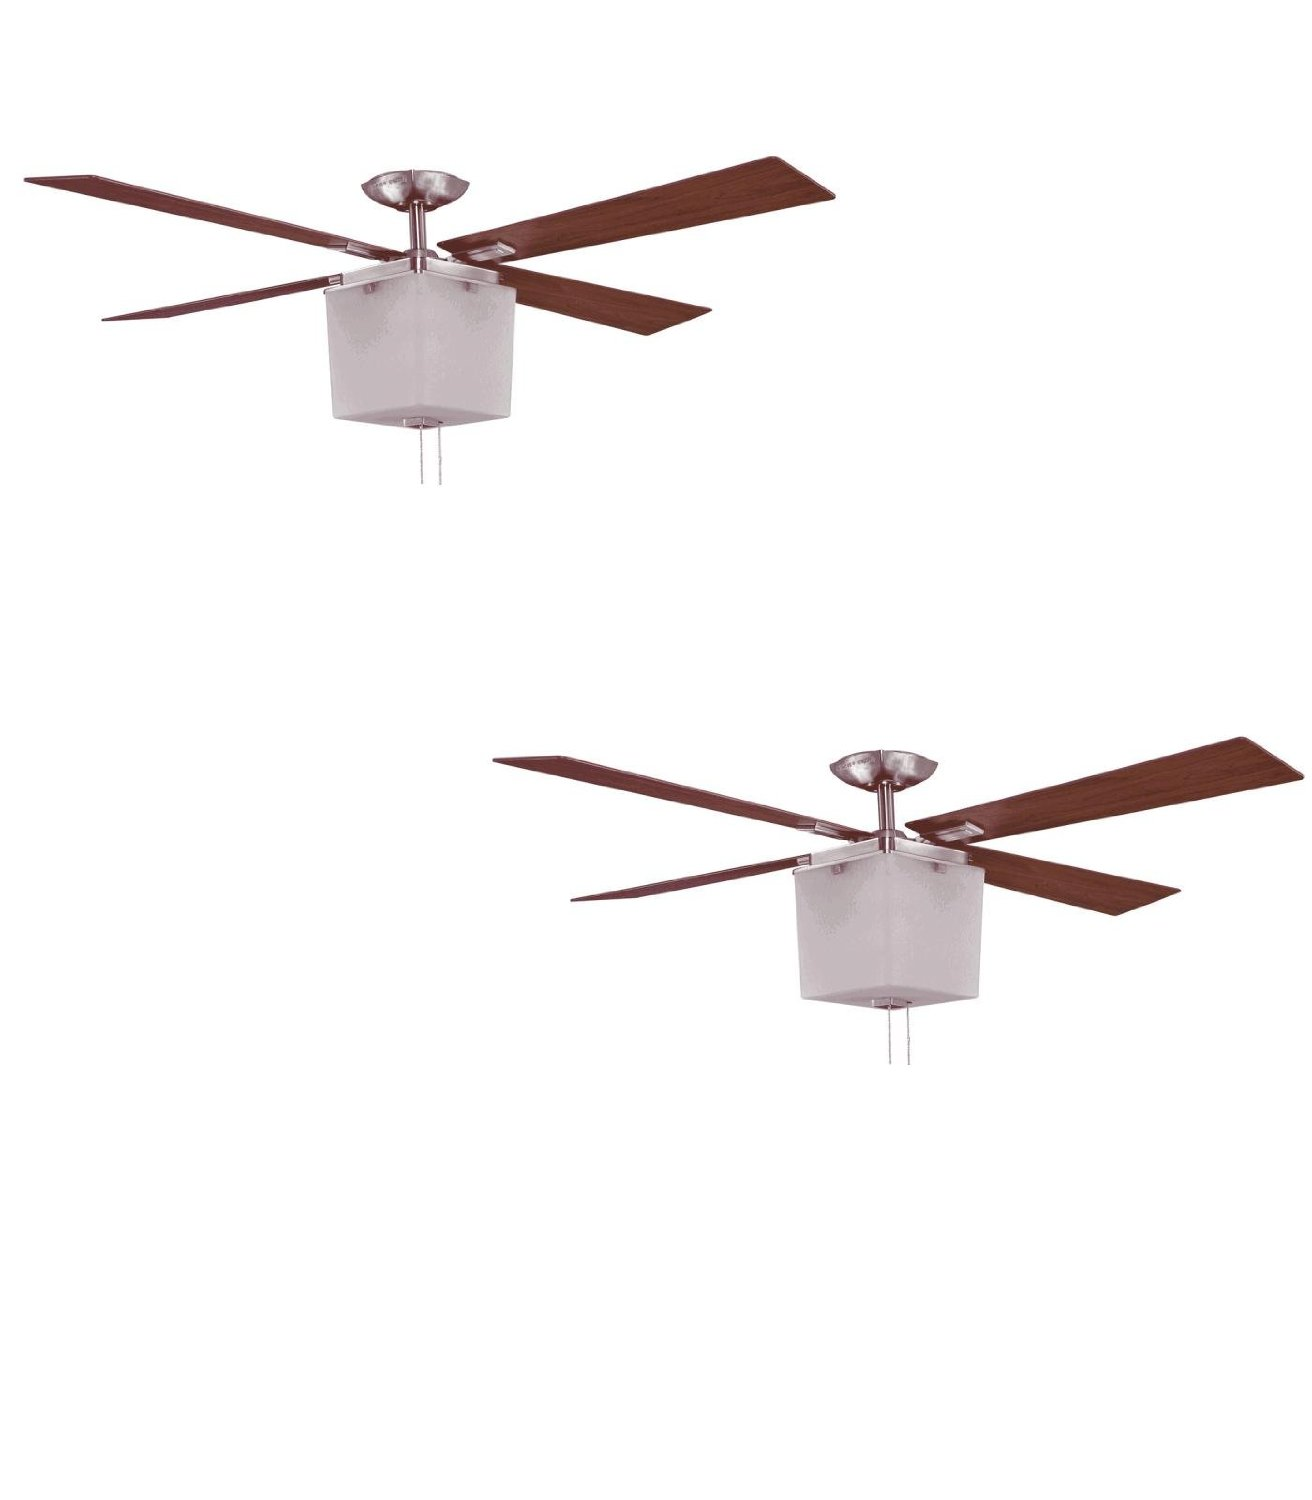 Buy Set Of Two No Lp8130lbn Le Marche 56 In Brushed Nickel Downrod Mount Ceiling Fan With